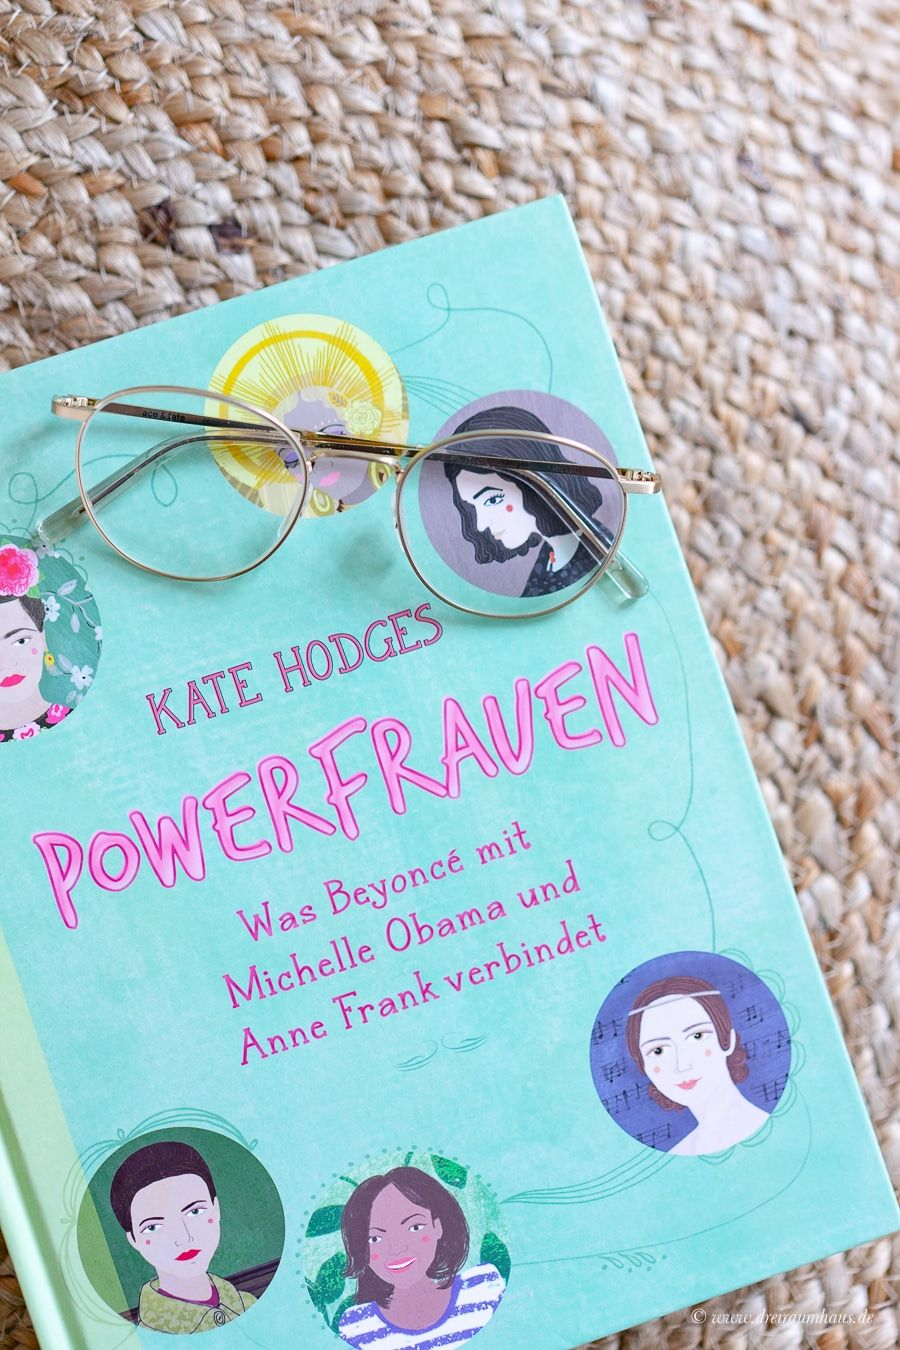 You want to change your life? Change the way you think... oder warum Powerfrauen ein gigantisches Netzwerk haben! Kate Hodges Powerfrauen!